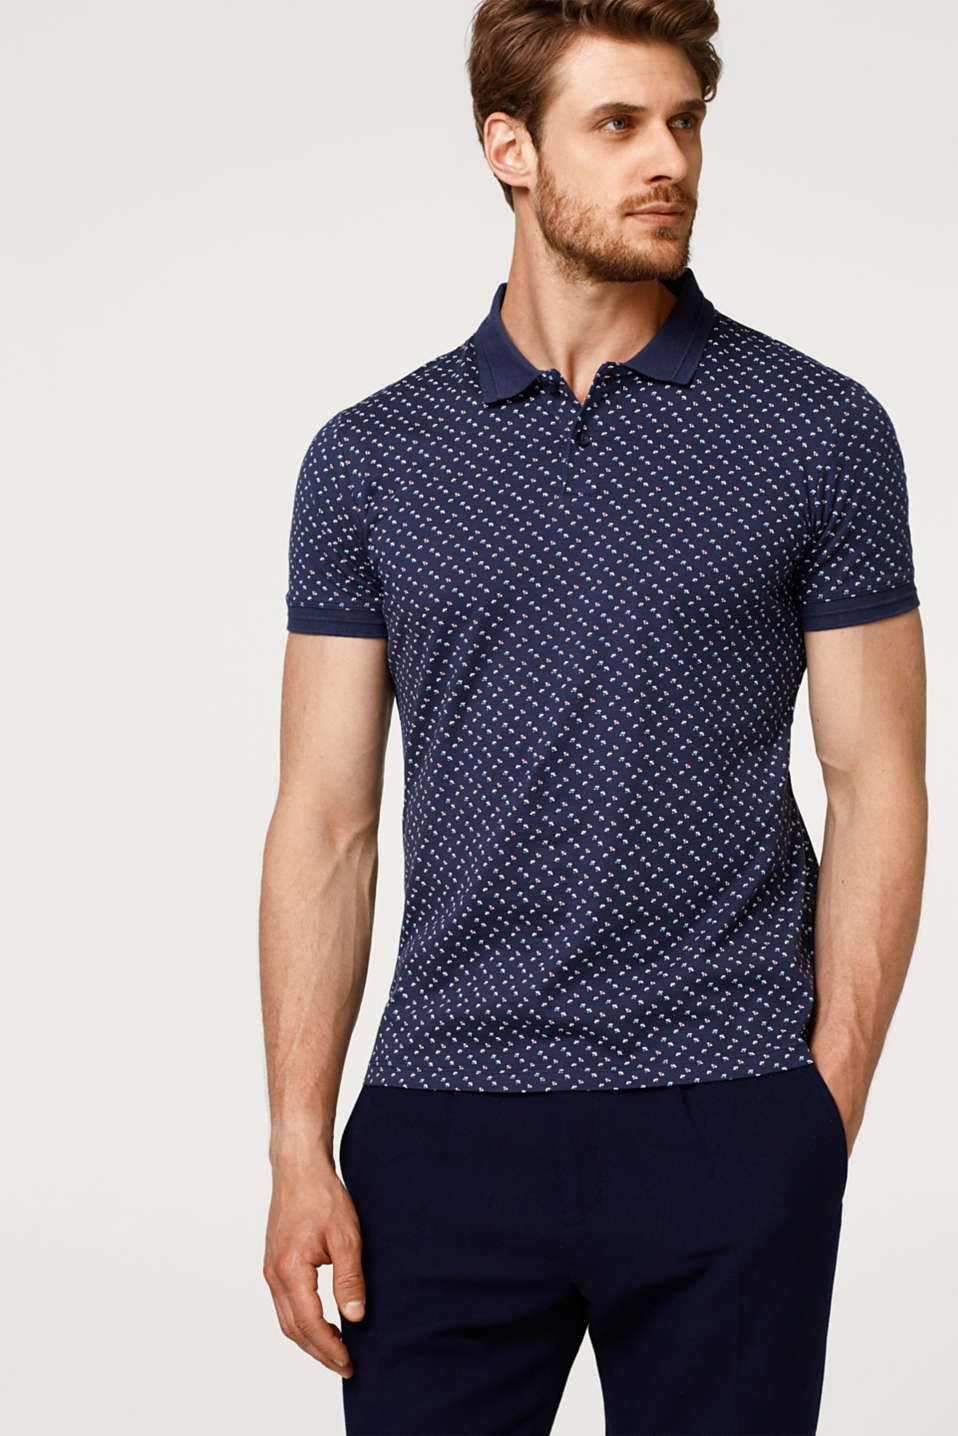 a7ea250792d Esprit Jersey polo shirt with minimal print, in cotton at £25   love ...